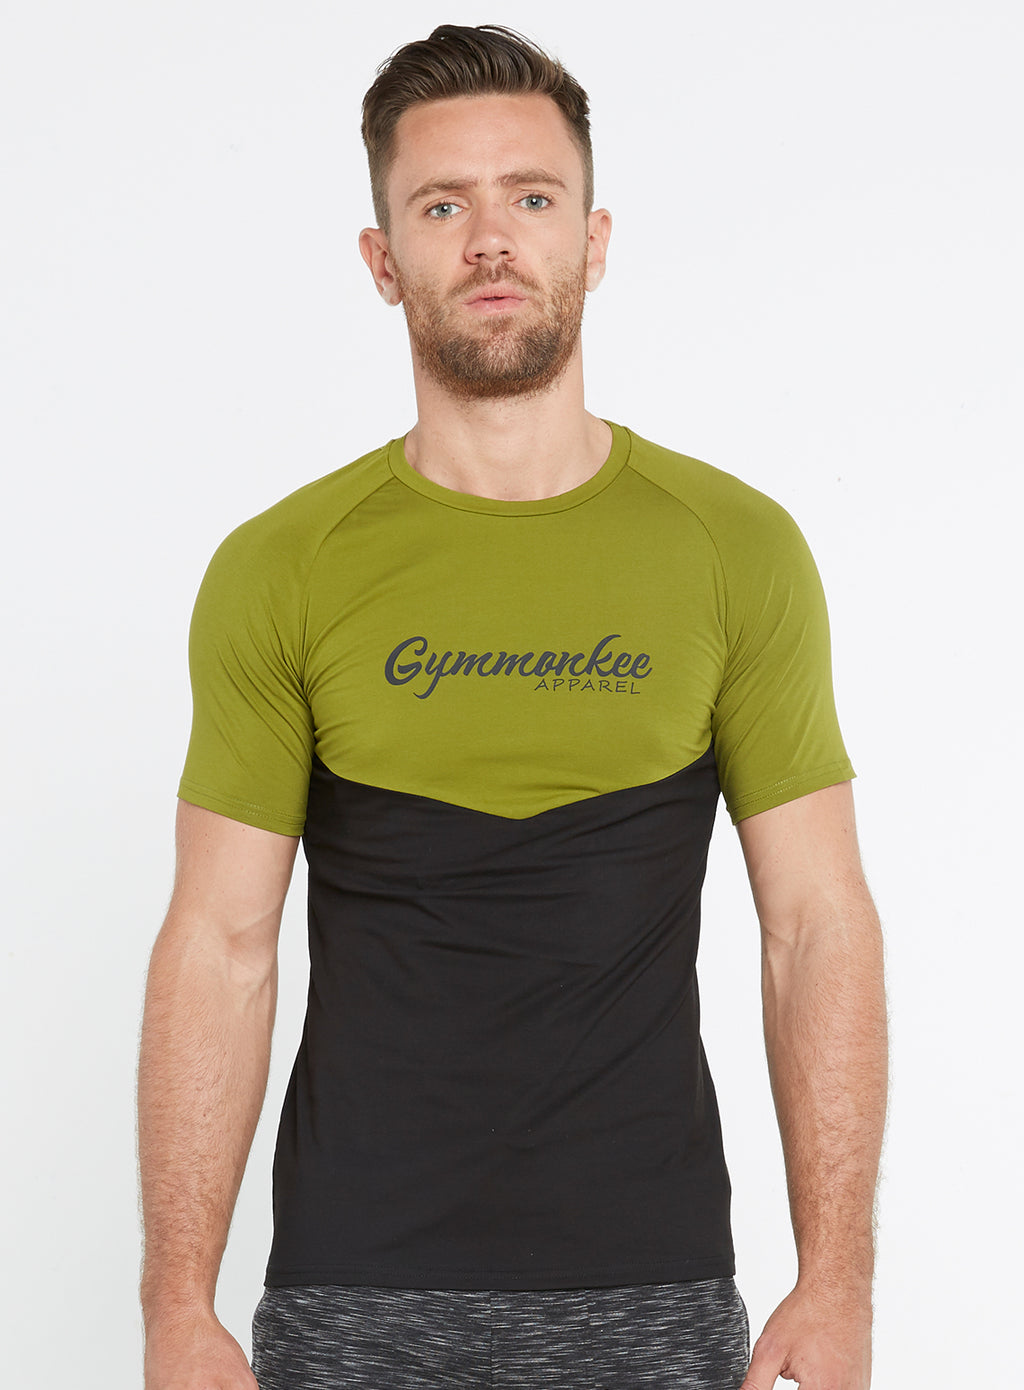 Gym Monkee - Black and Khaki Tee FRONT